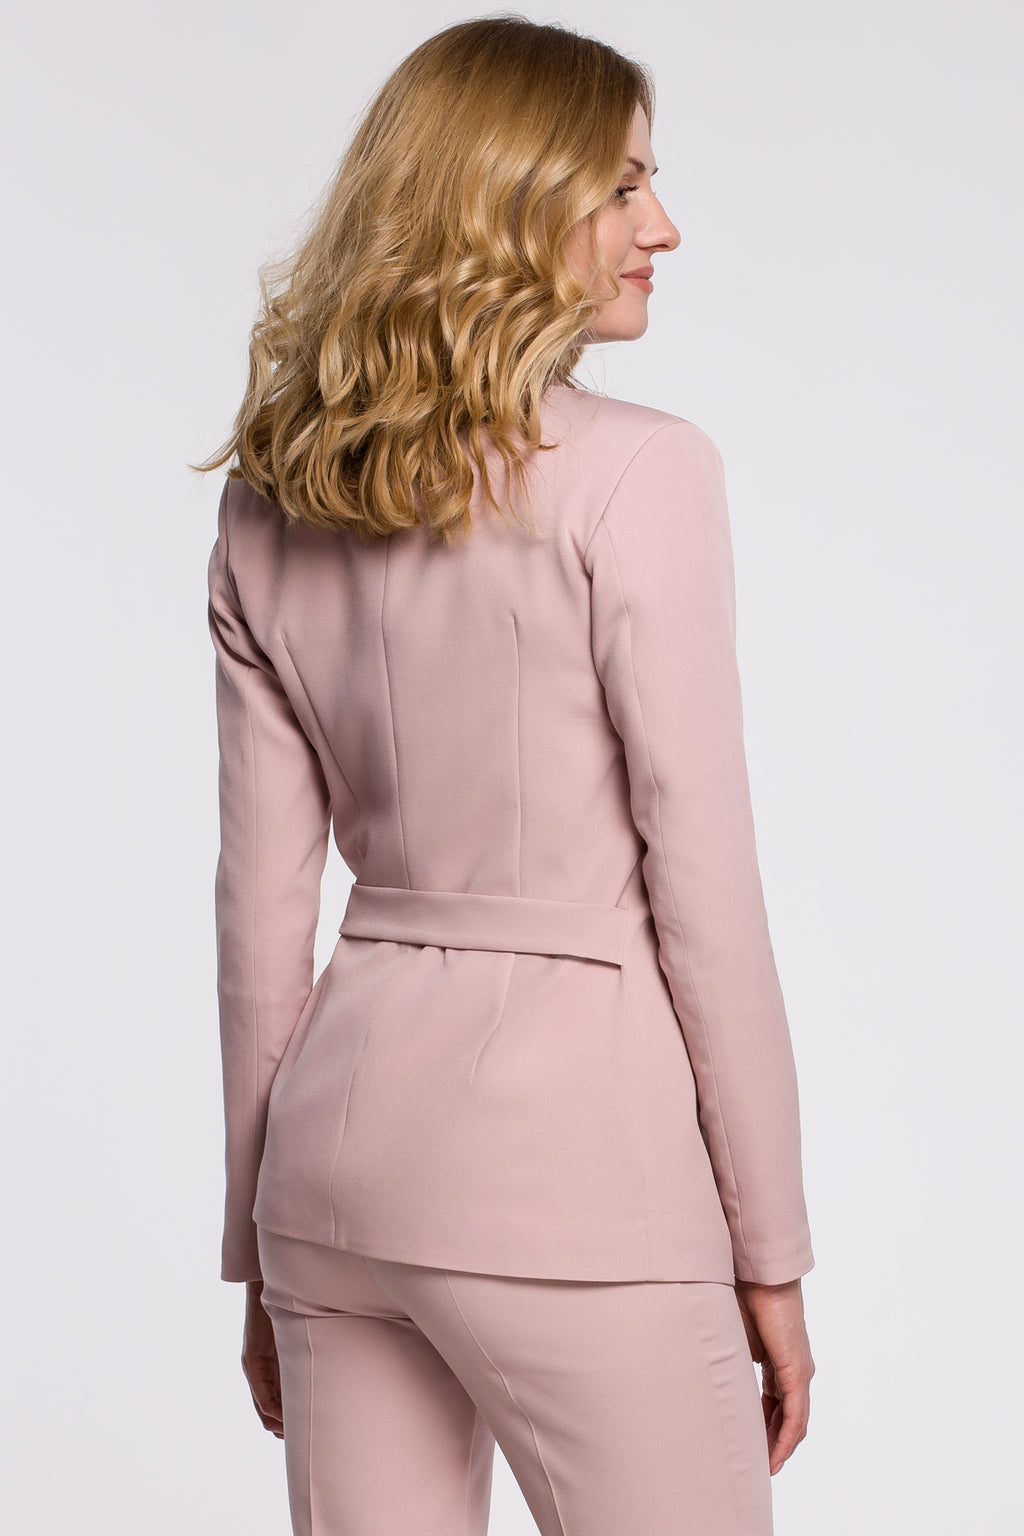 Powder Pink Tied Blazer - So Chic Boutique